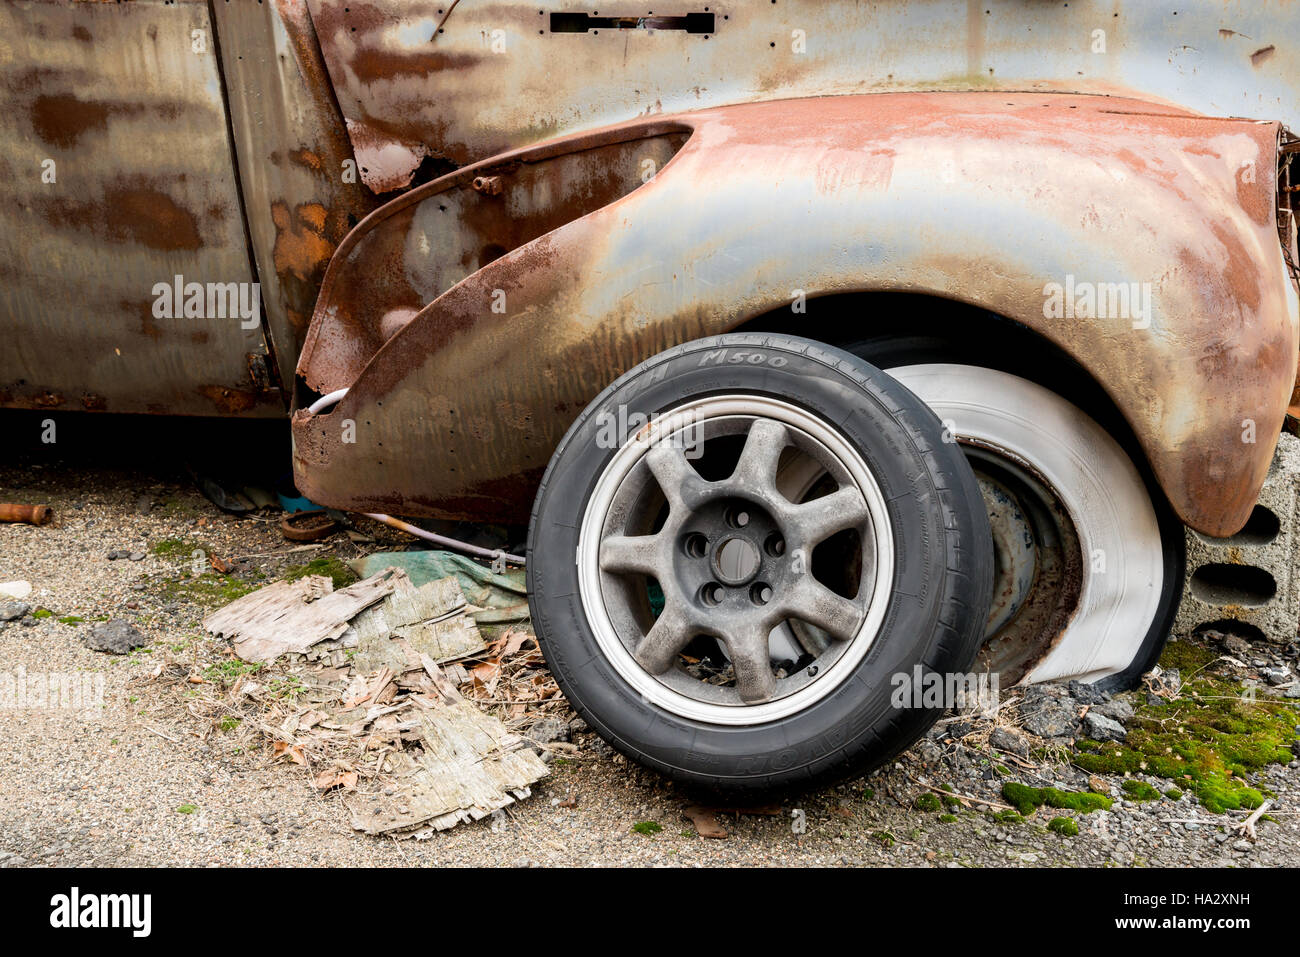 Rusted Vintage Car Parts Stock Photo: 126684029 - Alamy